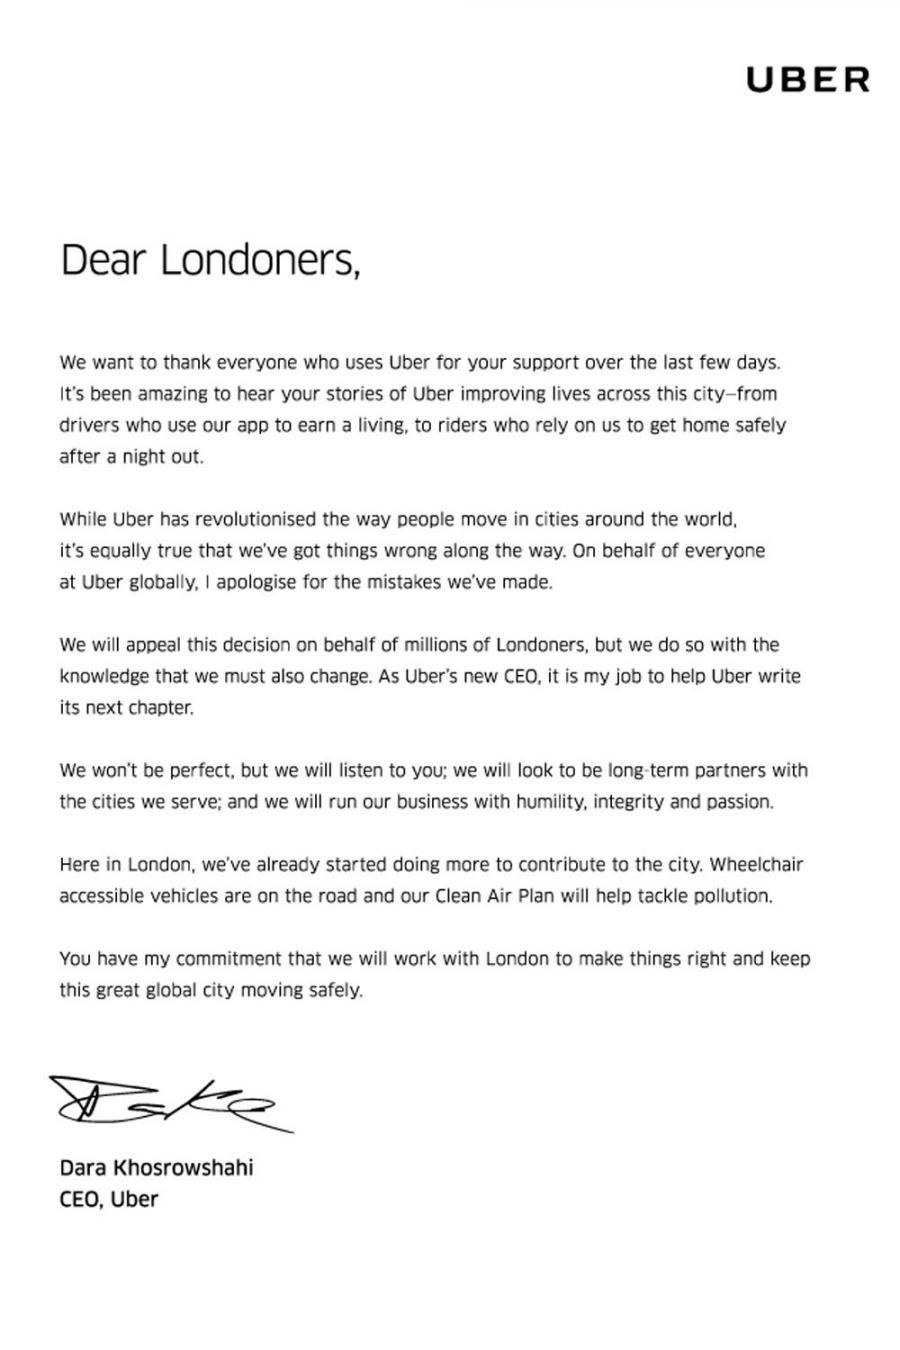 Ubers New Ceo Issues Public Apology To London For Companys